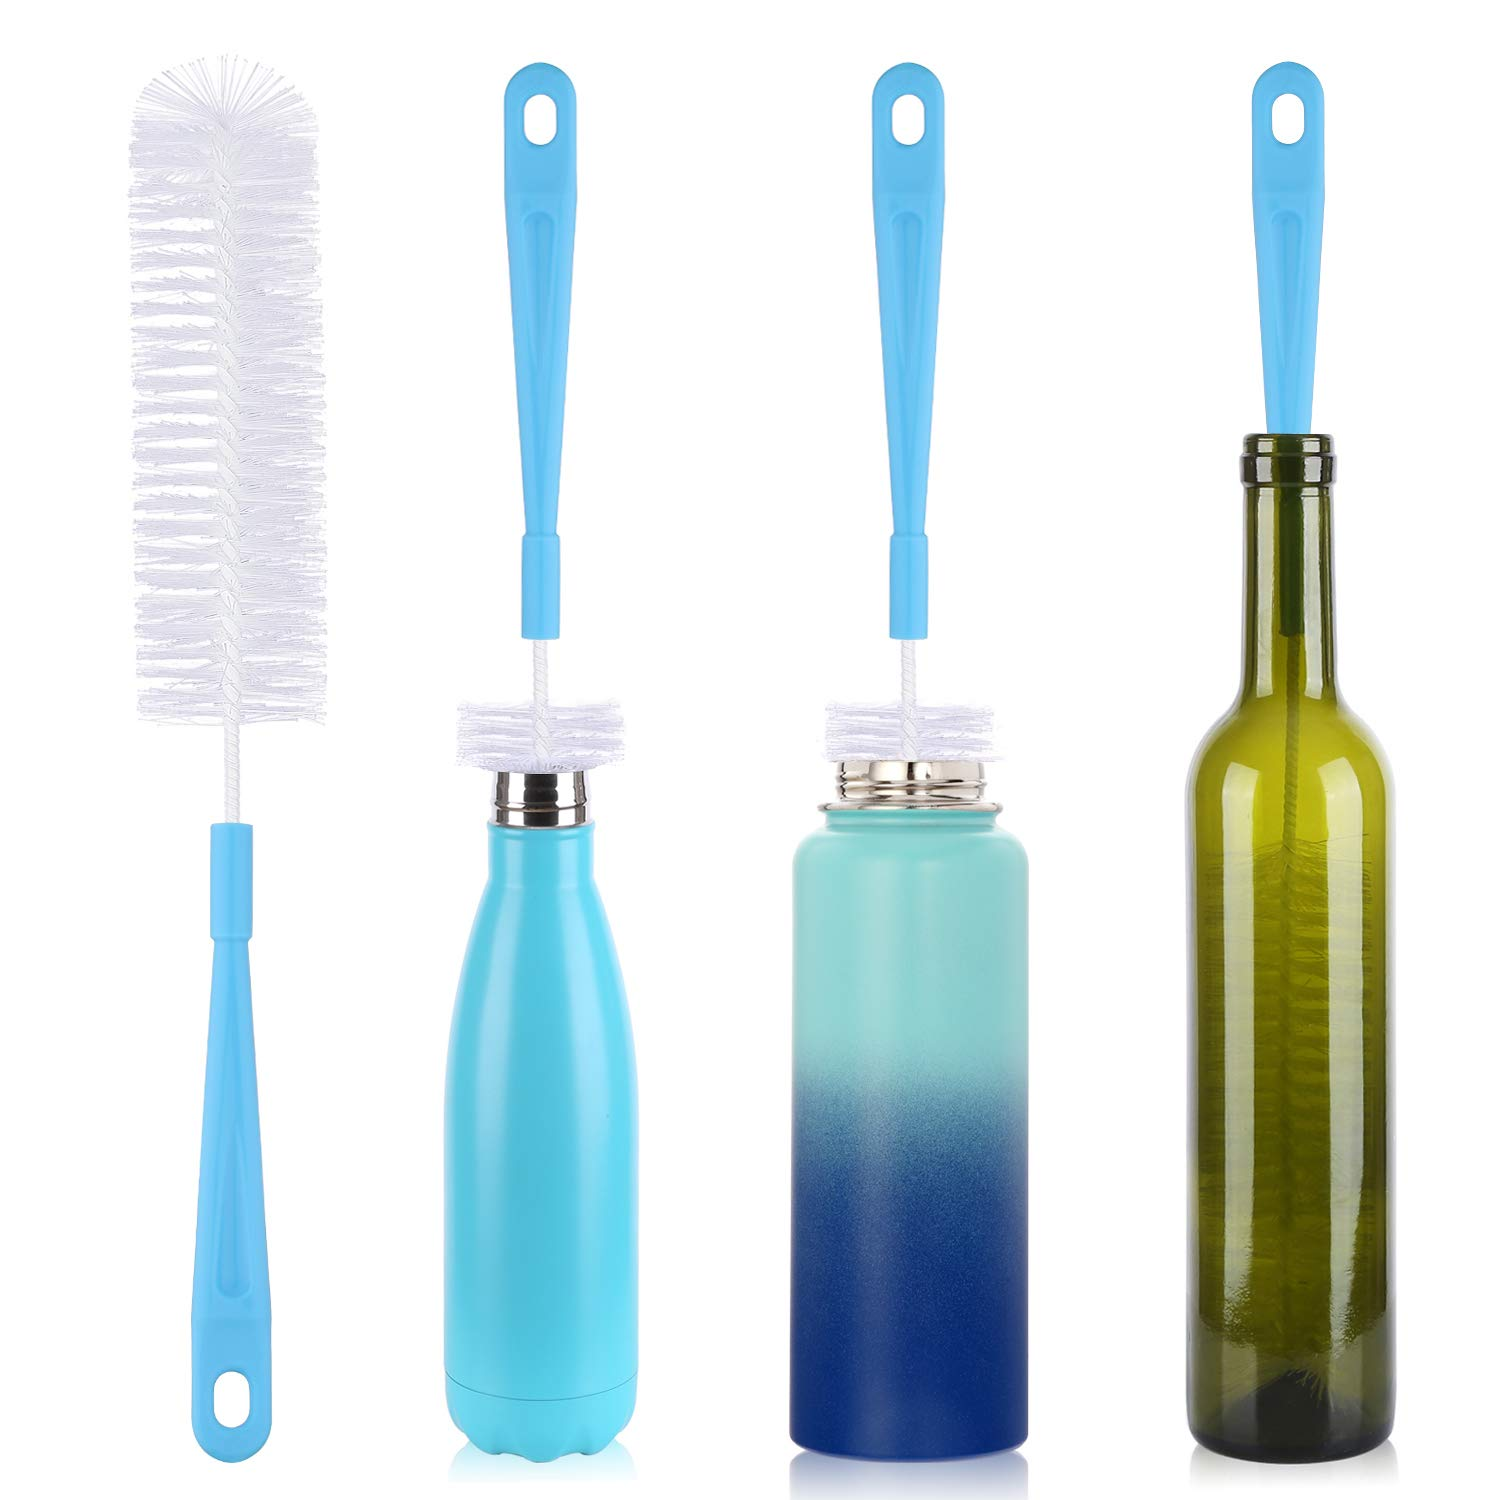 Amazon.com: 2 Qty Drink Straw Cleaning Brush - Bristle Cleaner for ...